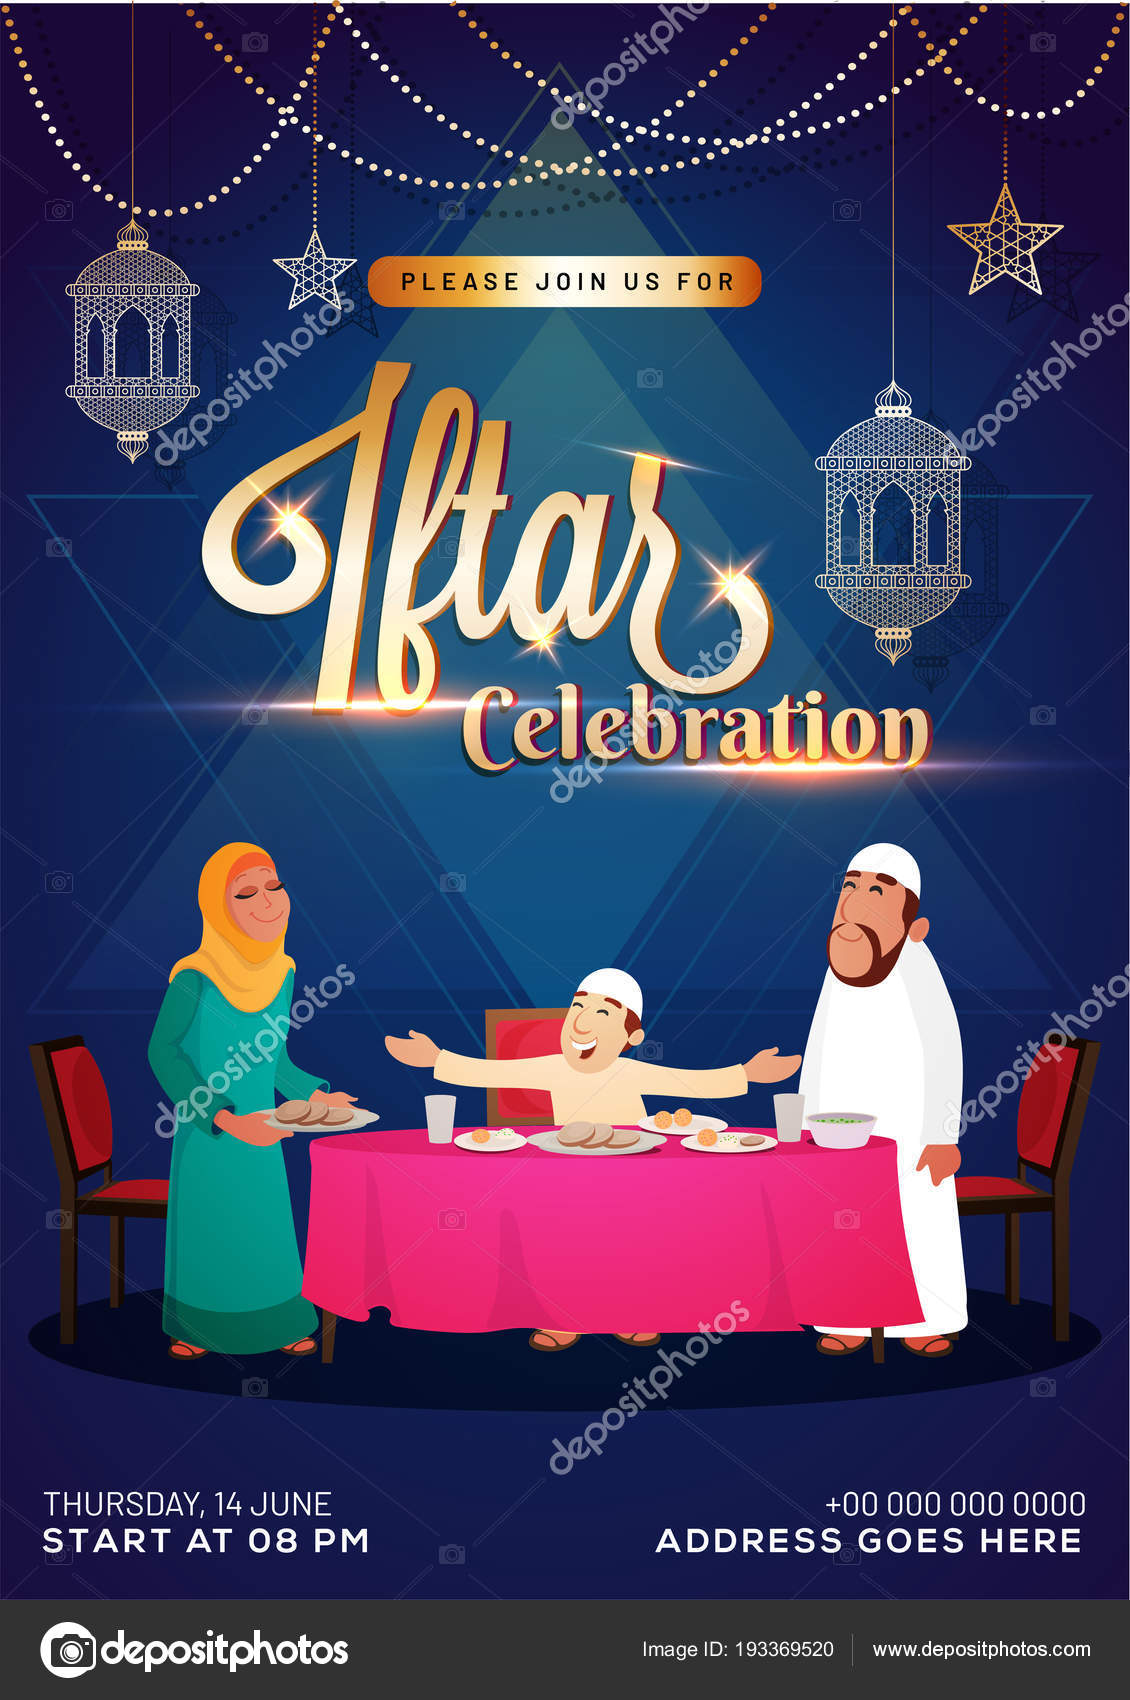 Iftar Party celebration invitation card poster or banner design